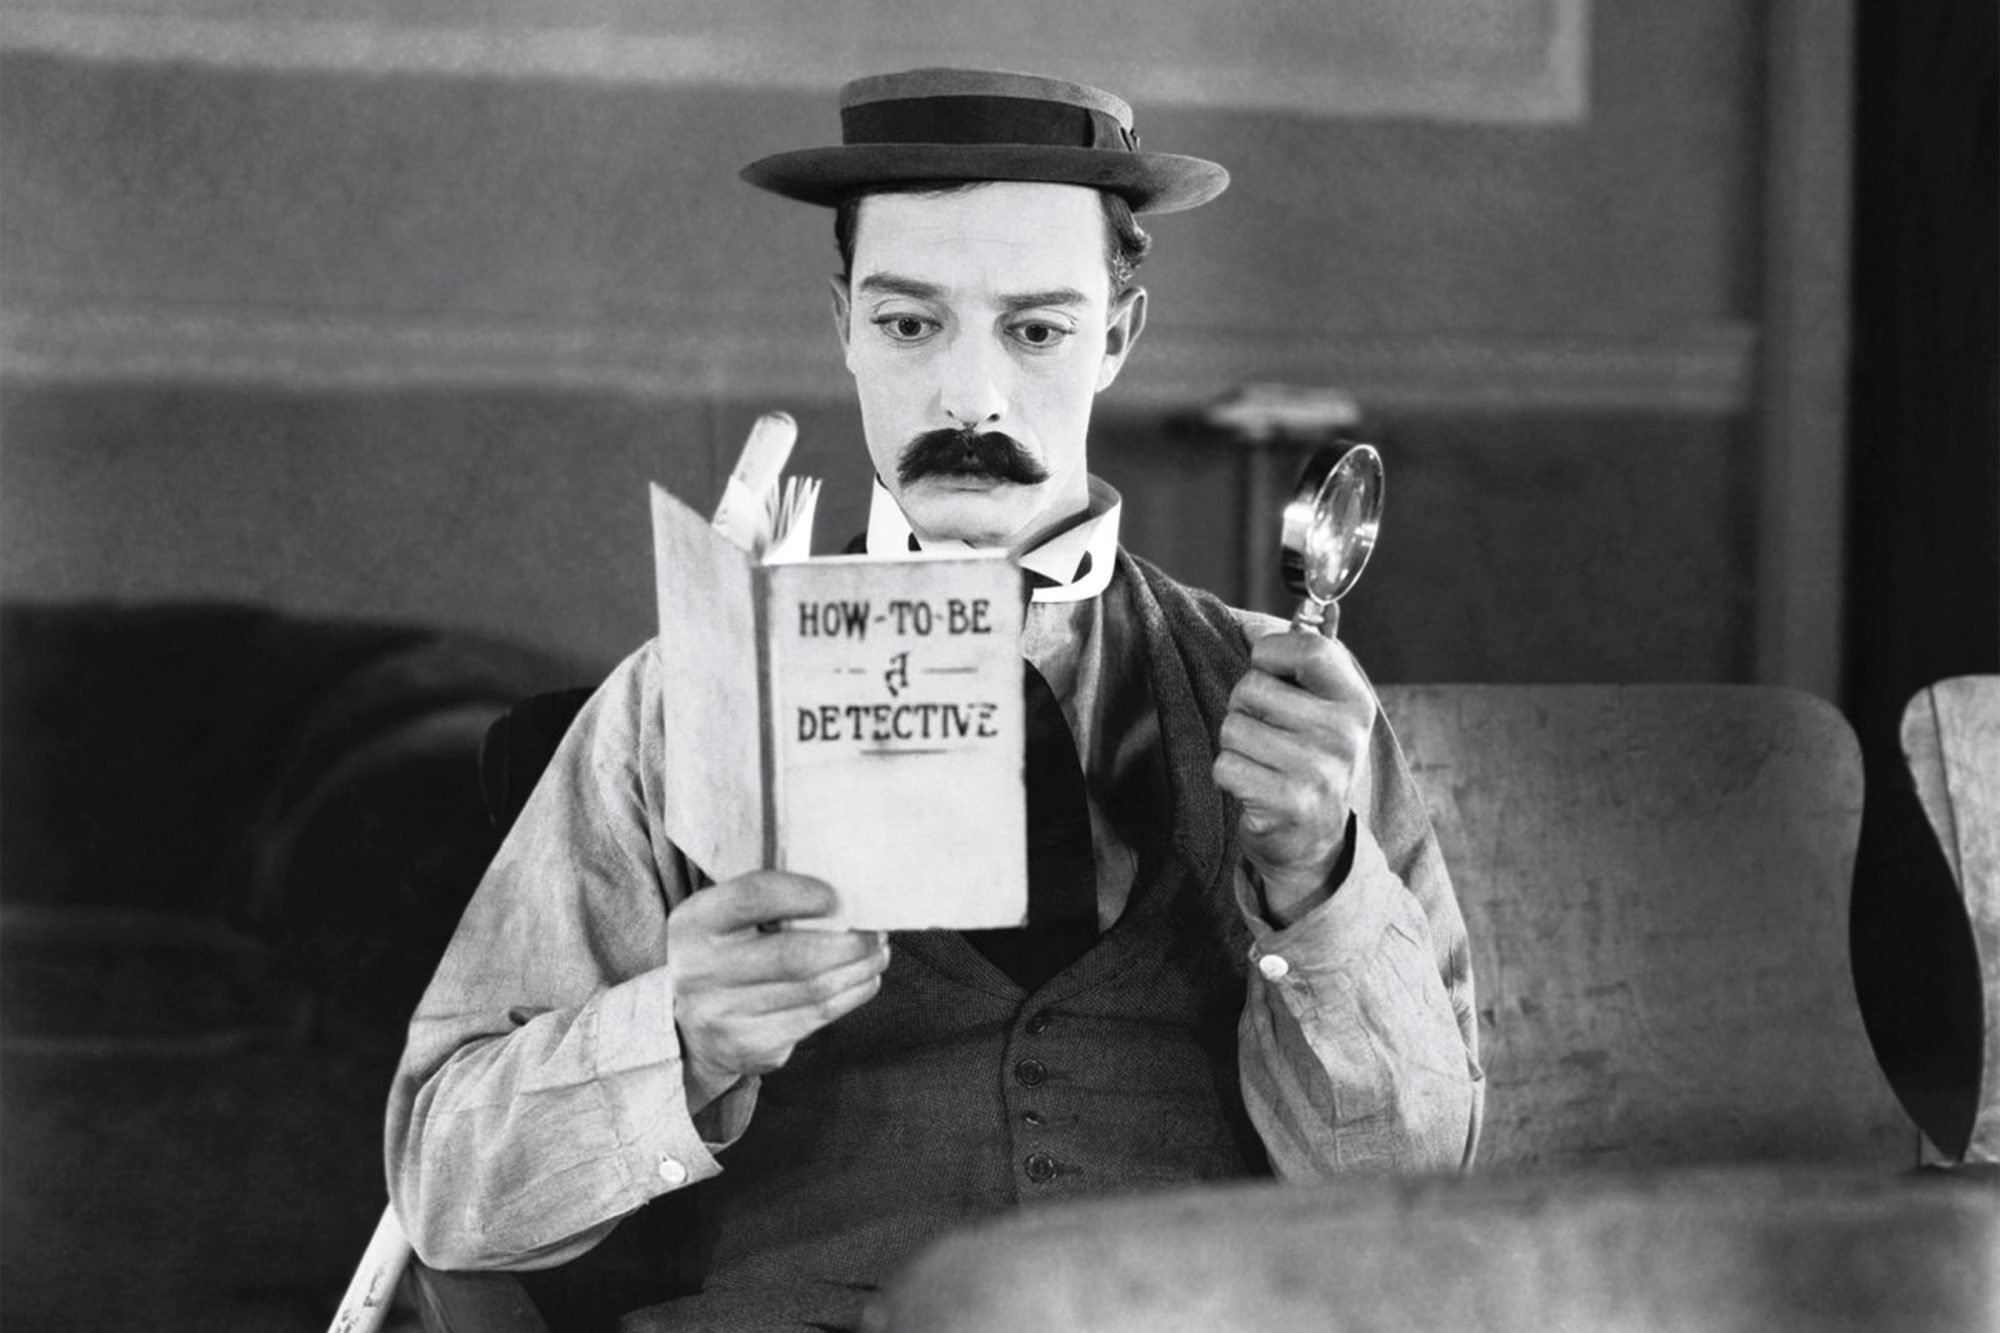 THE GREAT BUSTER: A CELEBRATIONBuster KeatonCR: Cohen Media Group